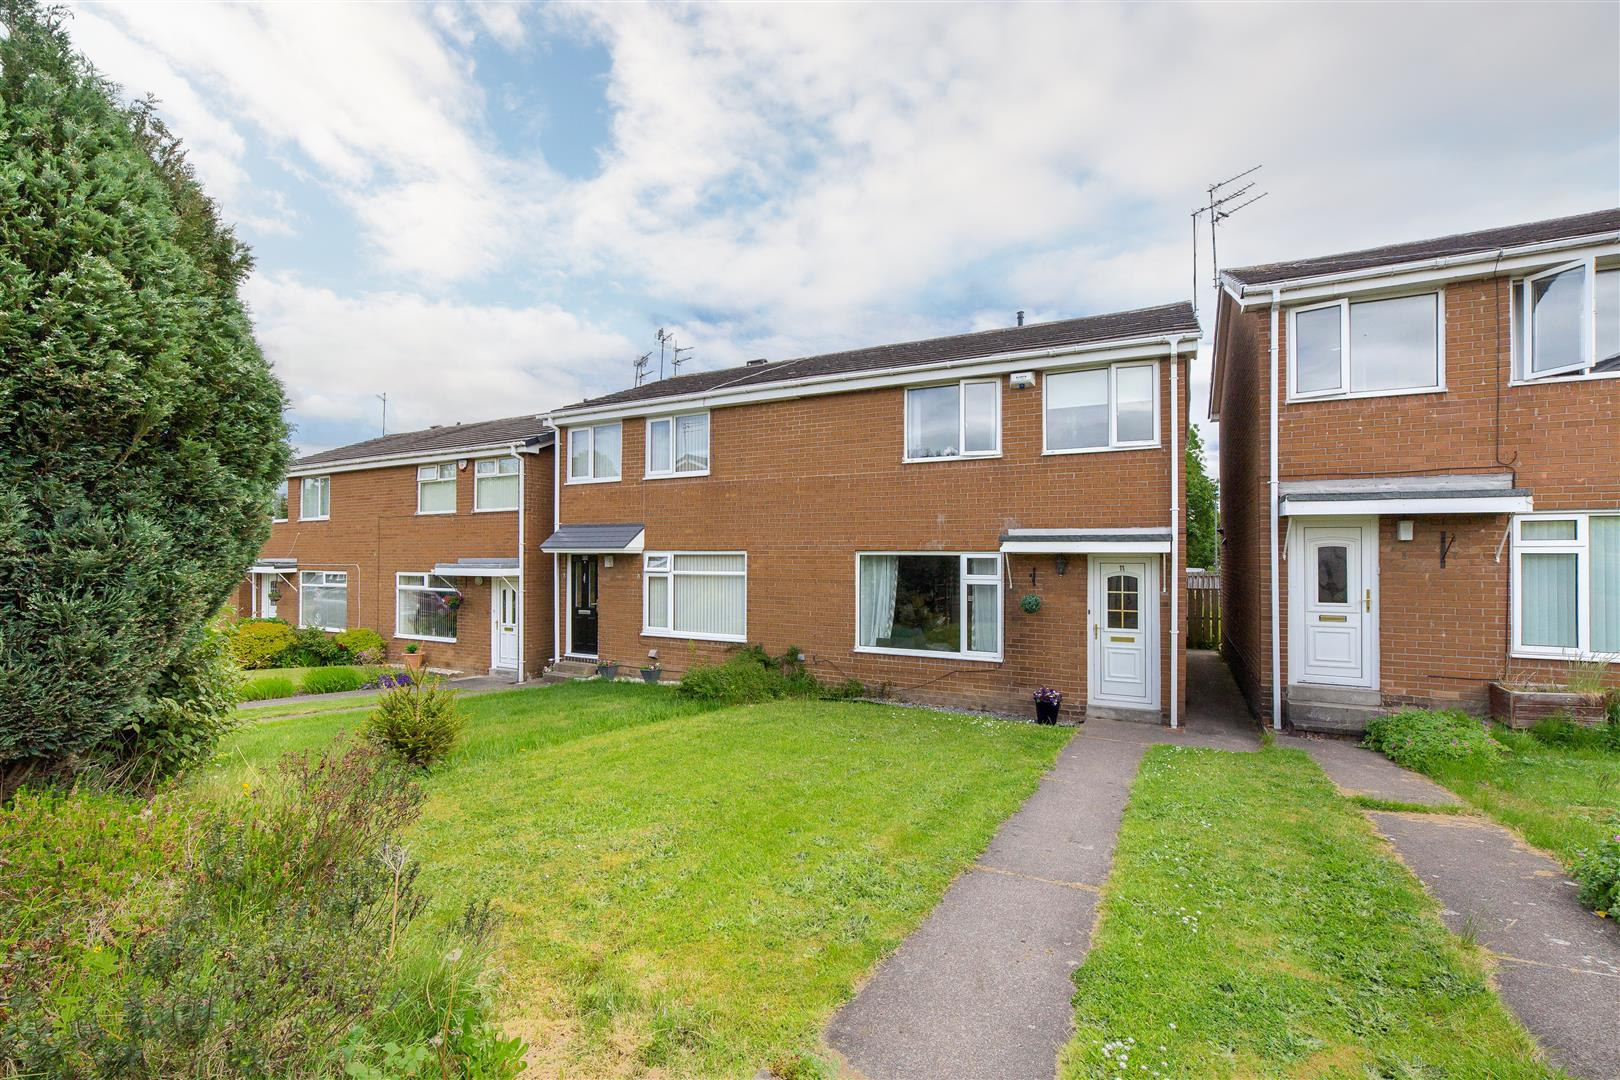 3 bed semi-detached house for sale in Cranbrook Court, Newcastle Upon Tyne - Property Image 1